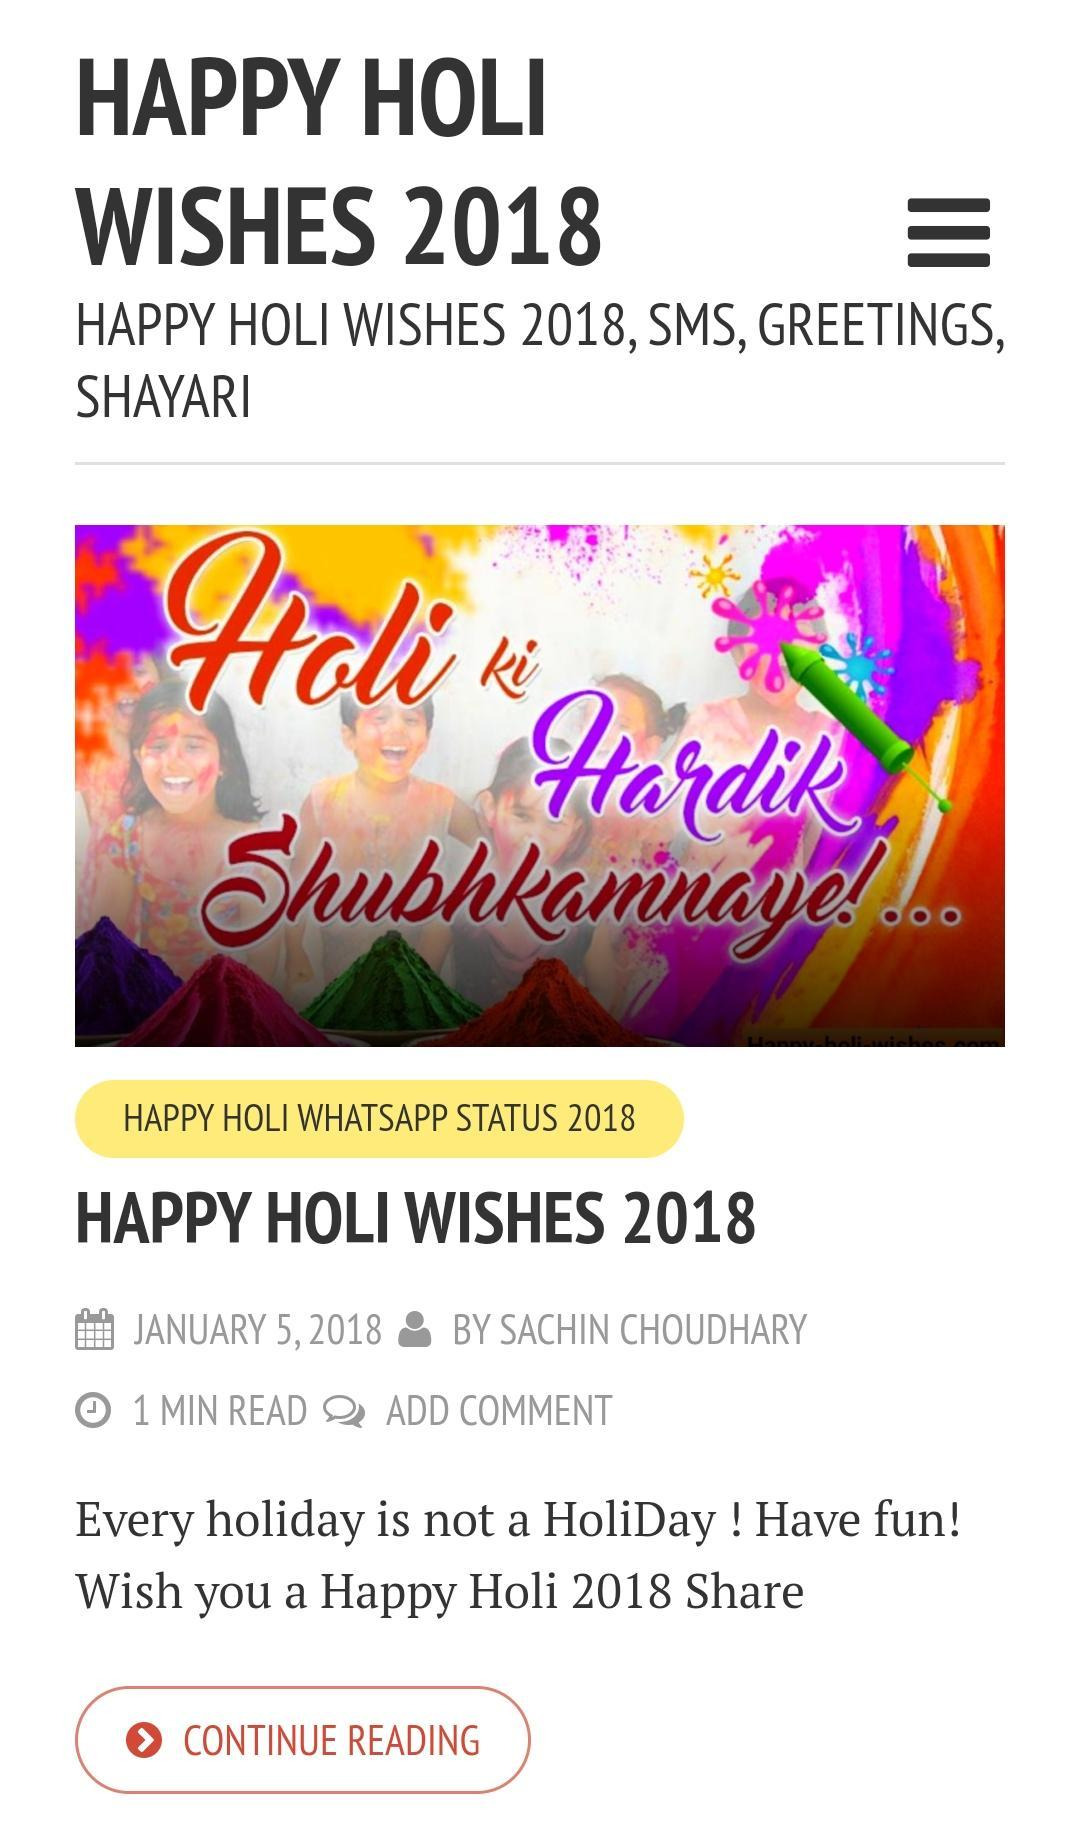 Holi Whatsapp Status 2018 For Android Apk Download